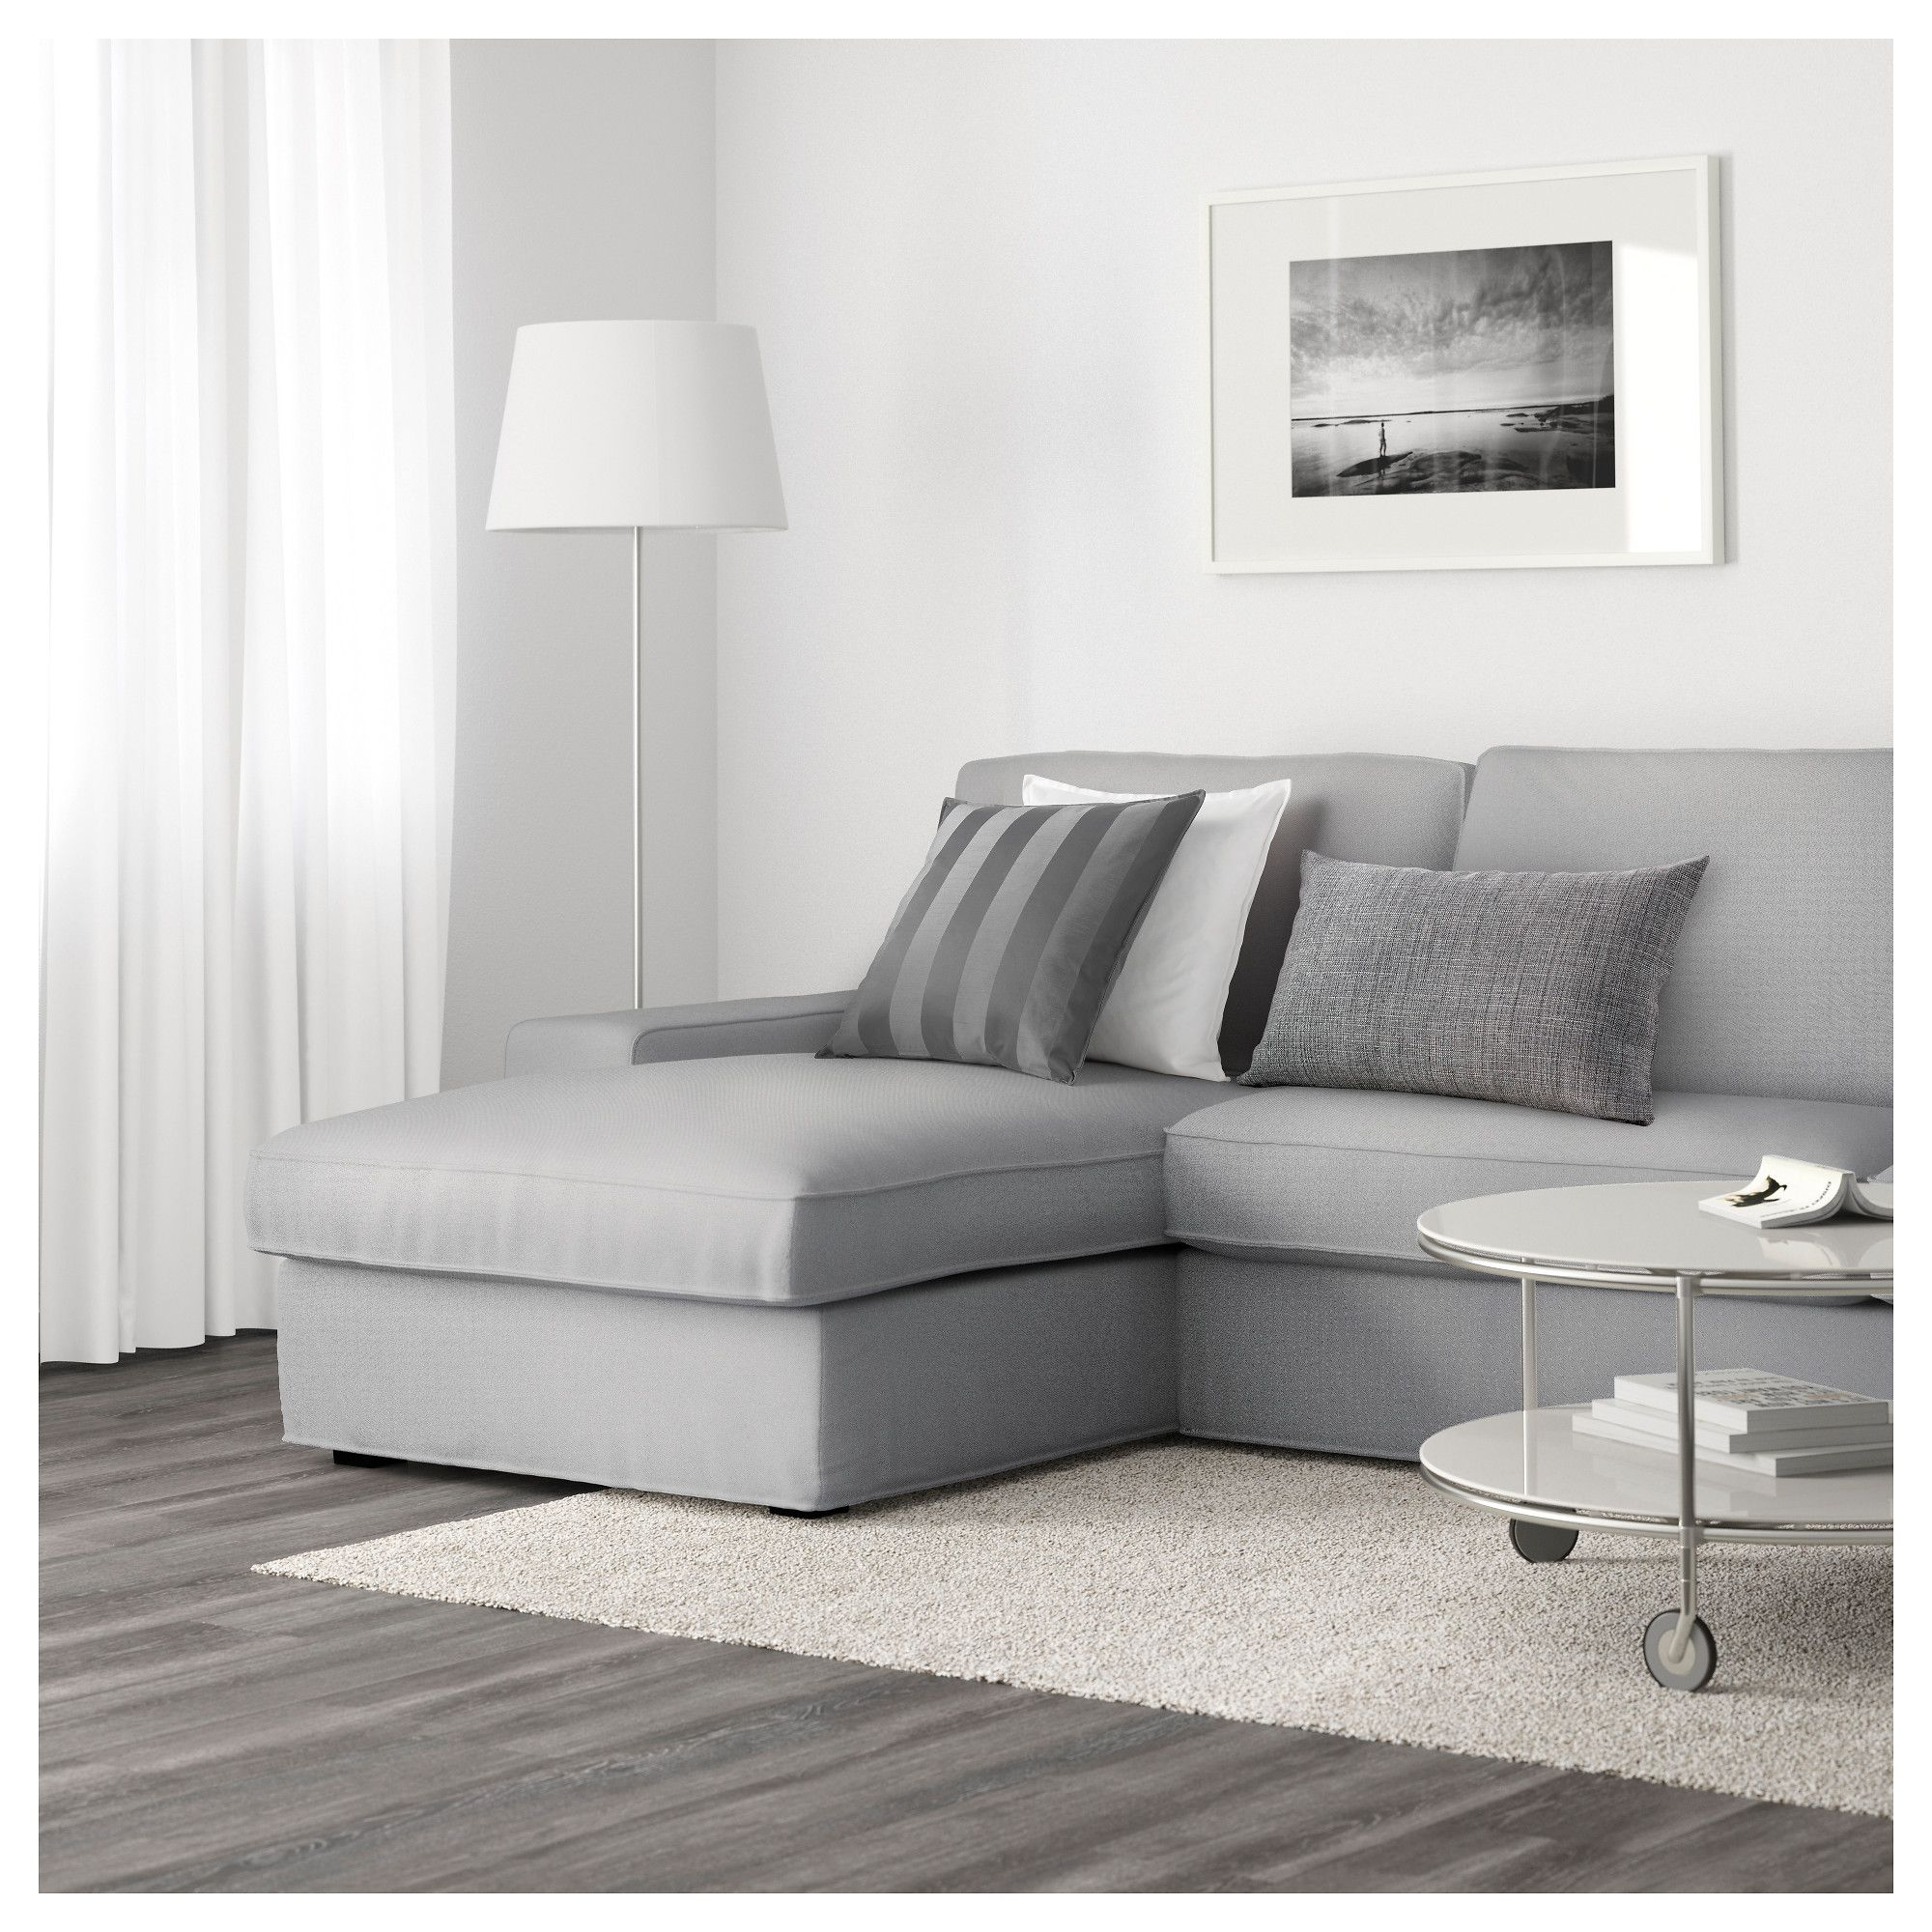 Kivik Sectional 4 Seat Orrsta With Chaise Orrsta Light Gray